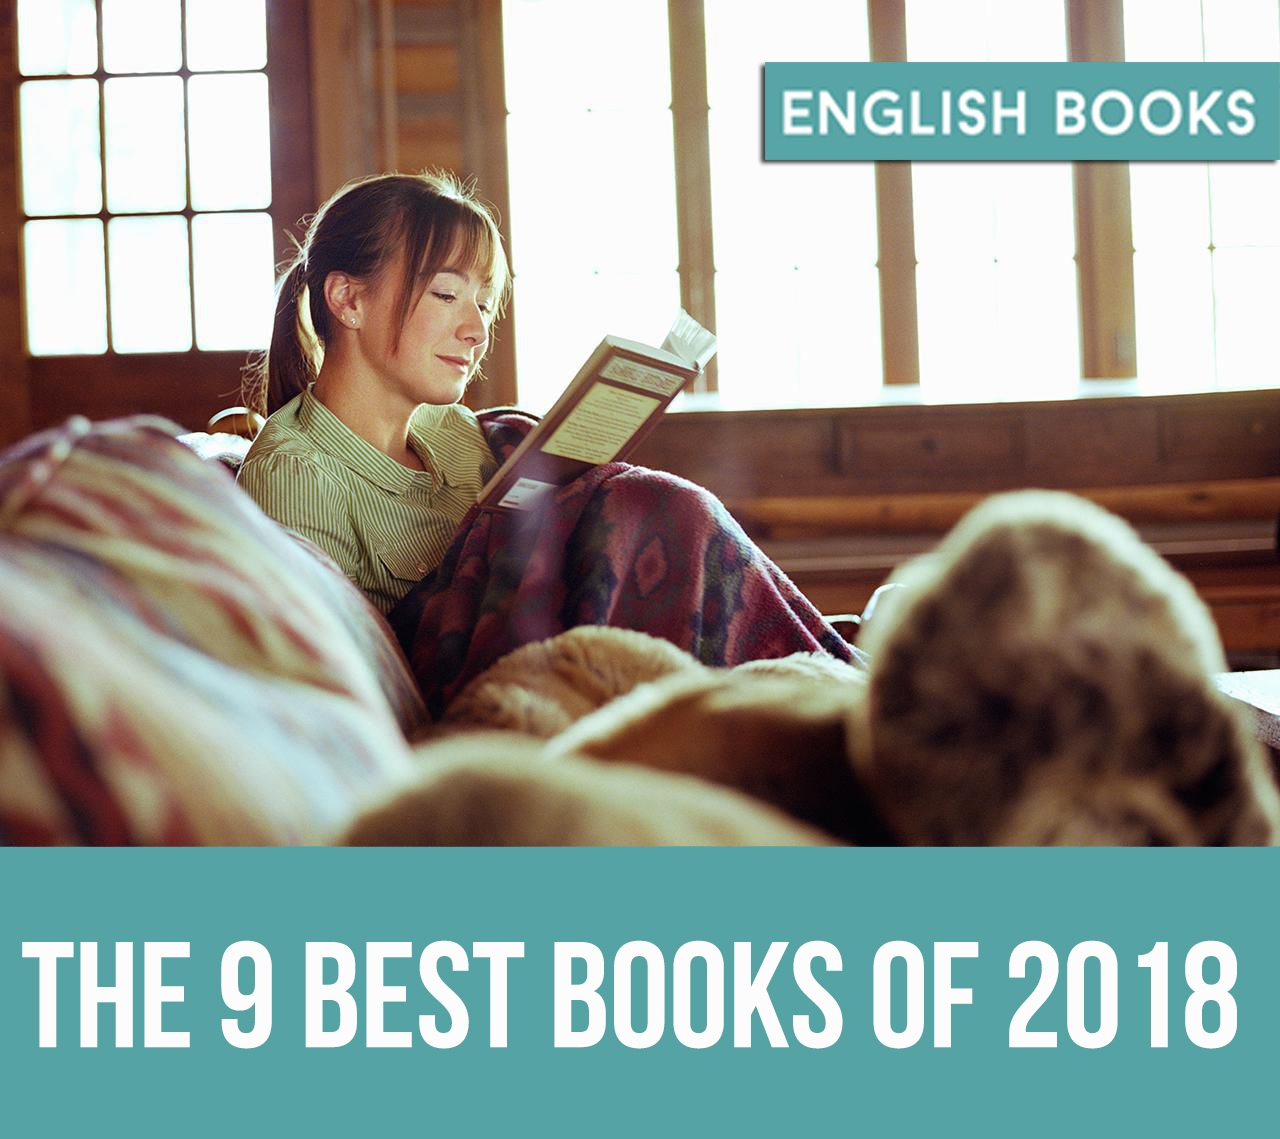 The 9 Best Books Of 2018